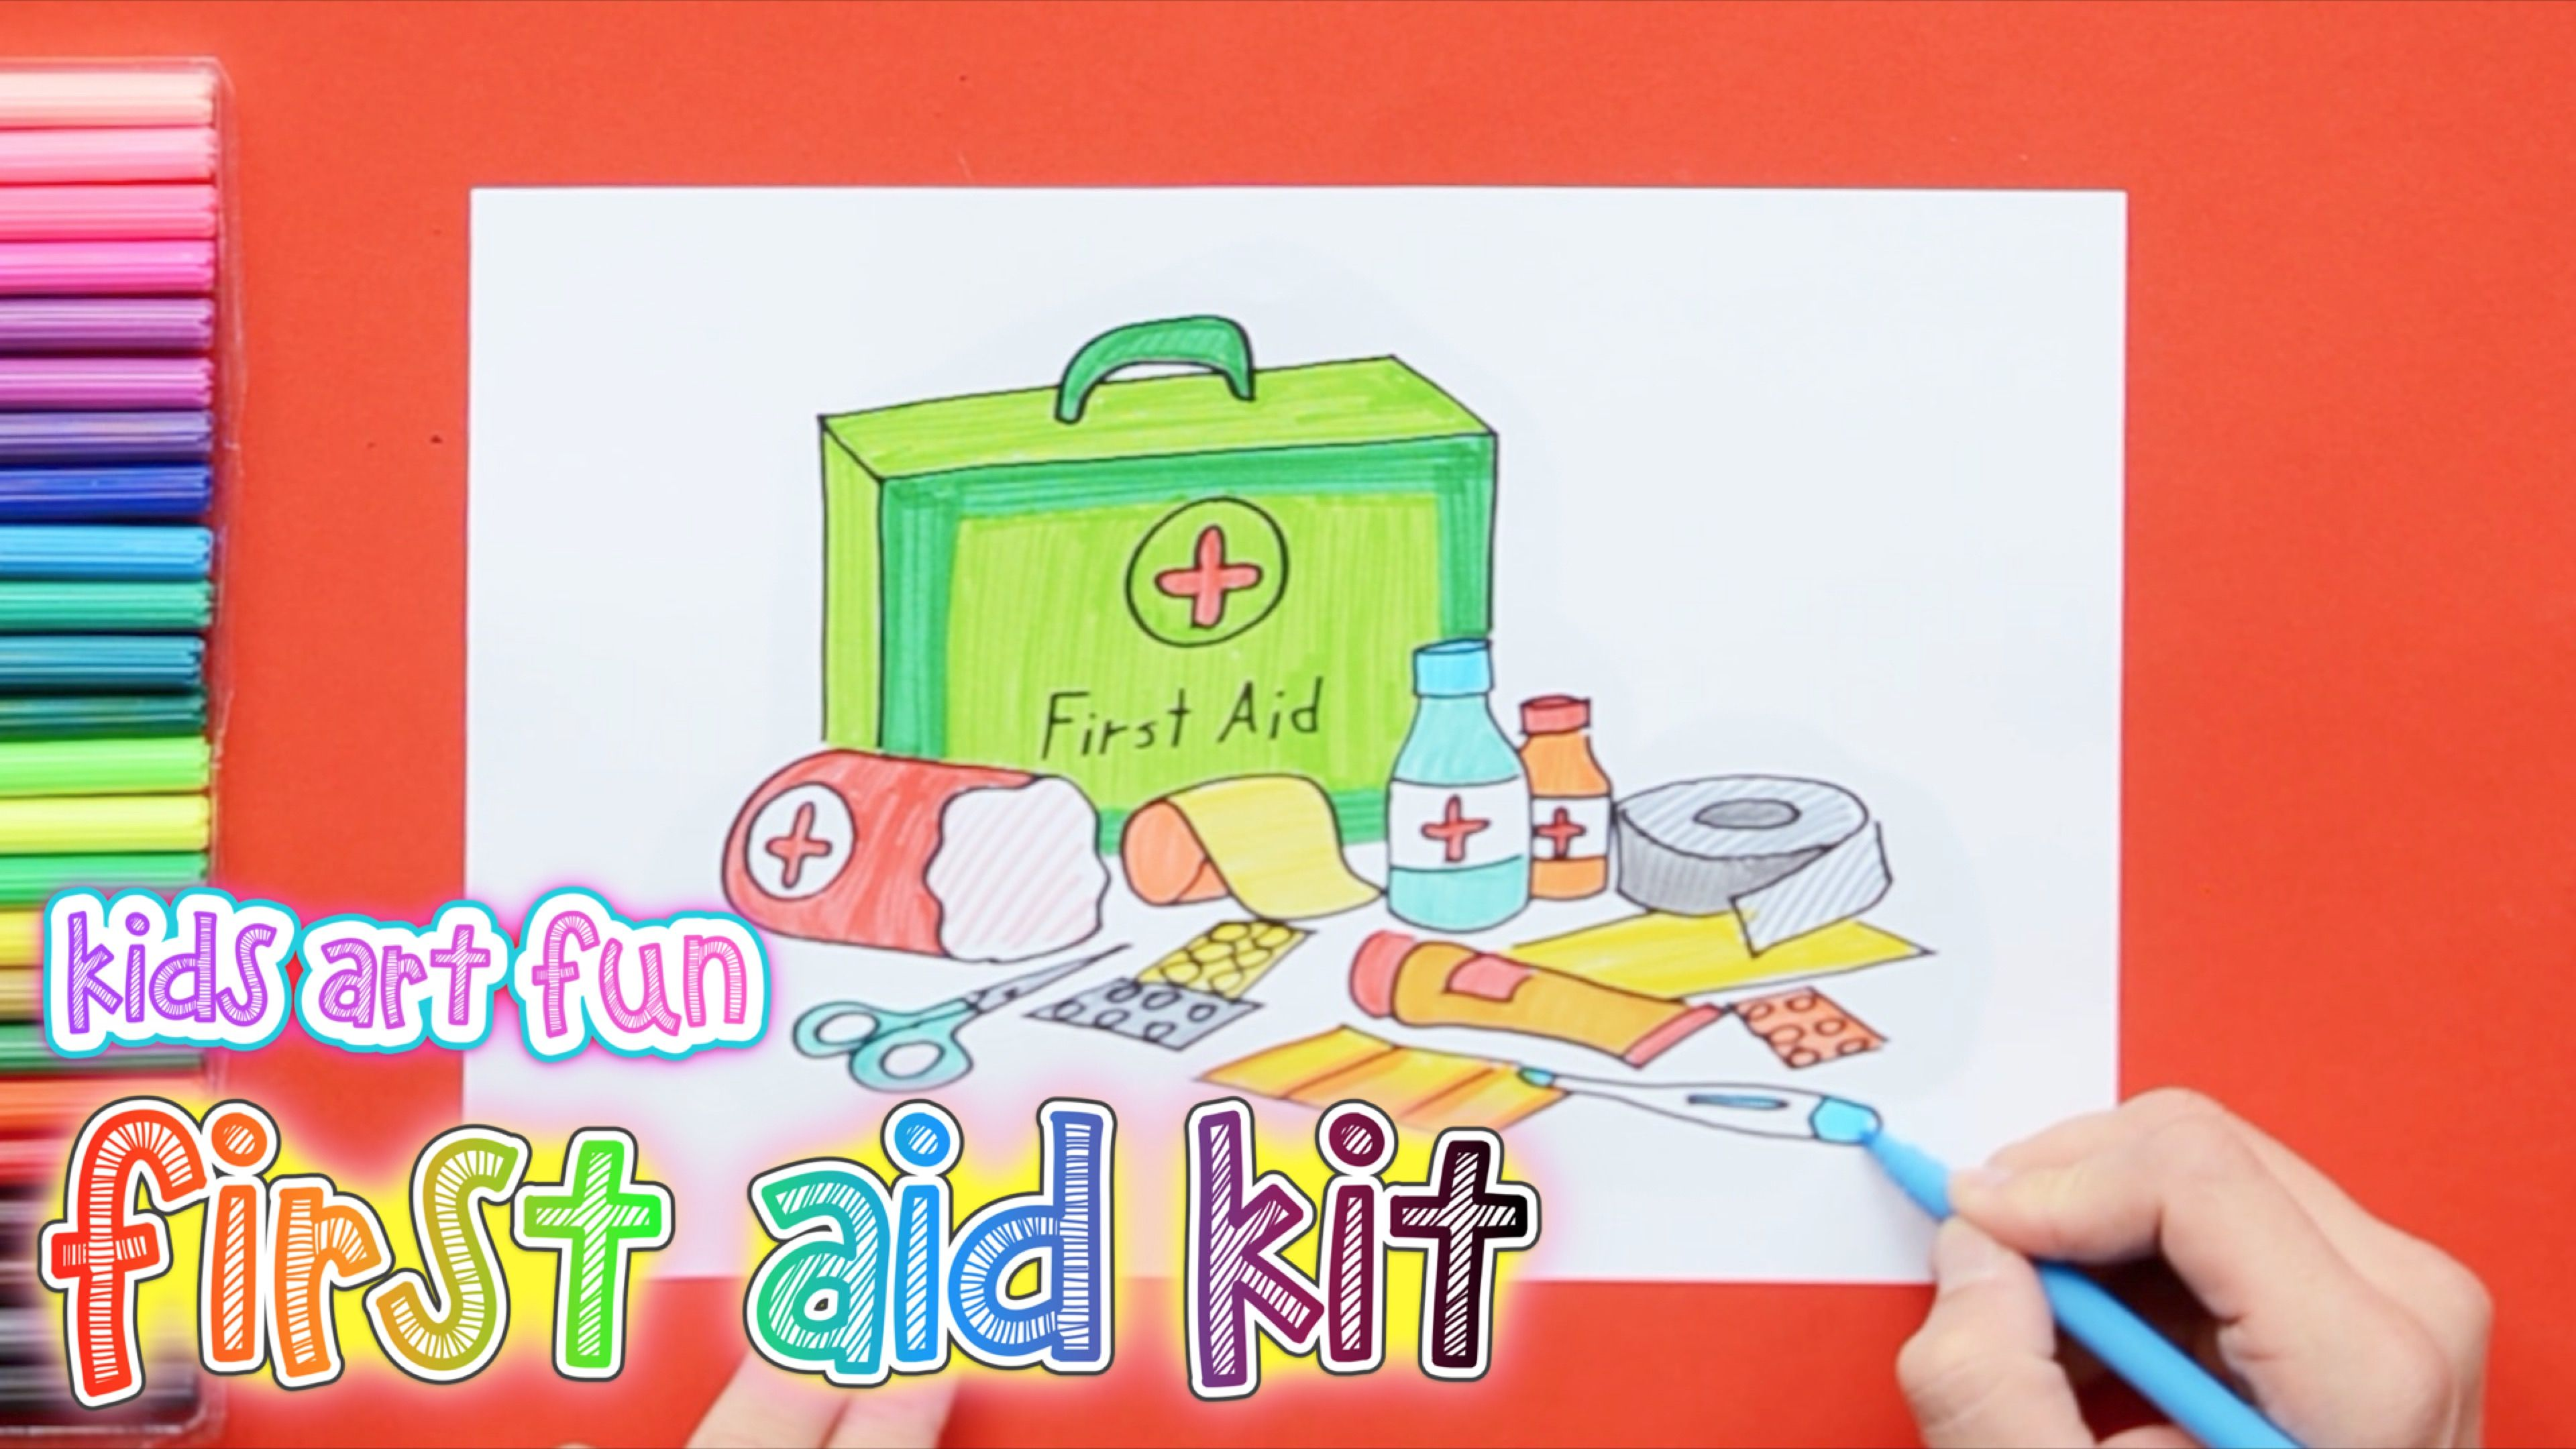 How To Draw And Color A First Aid Kit First Aid Kit Box First Aid For Kids First Aid Kit